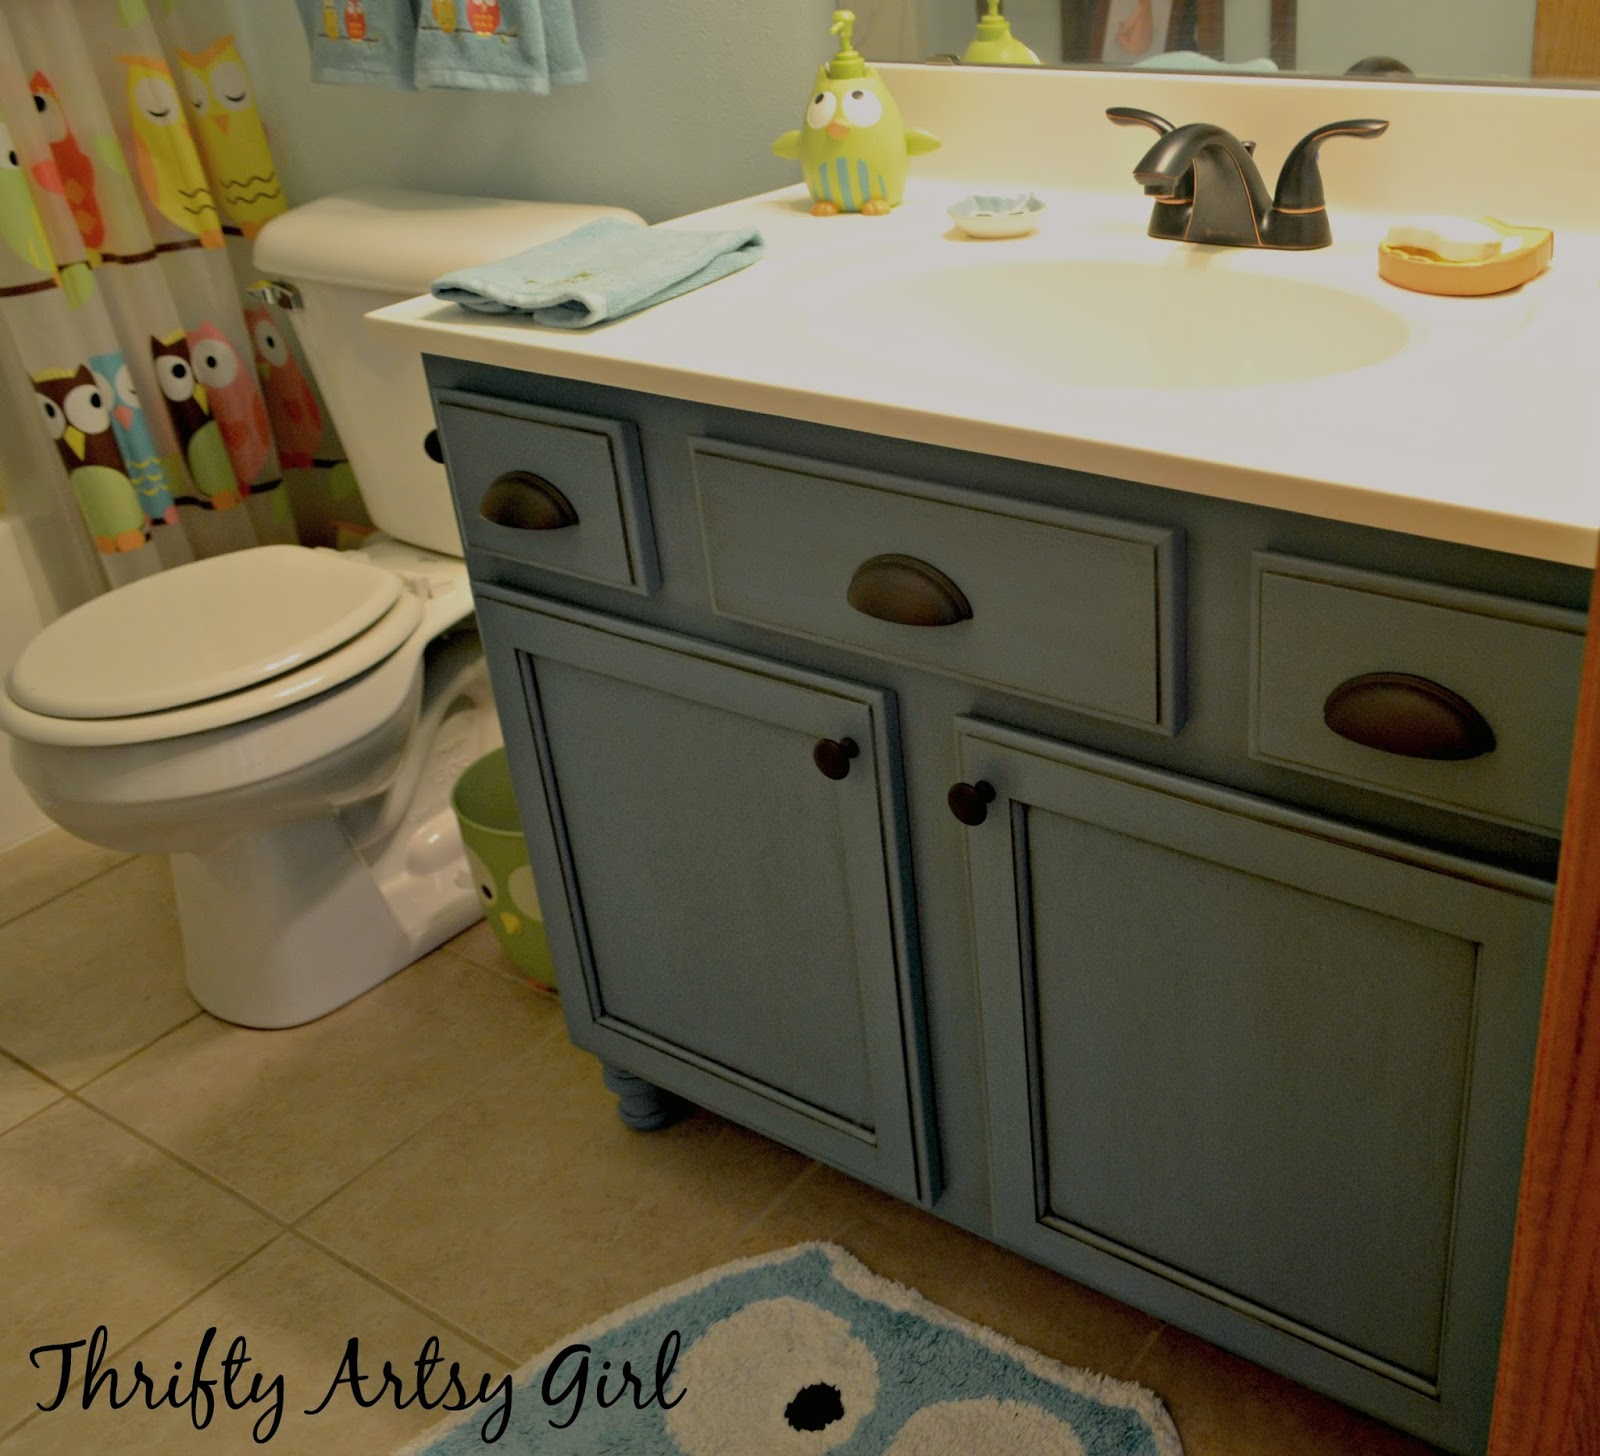 builders grade teal bathroom vanity and faucet upgrade for only 60 thrifty artsy girl